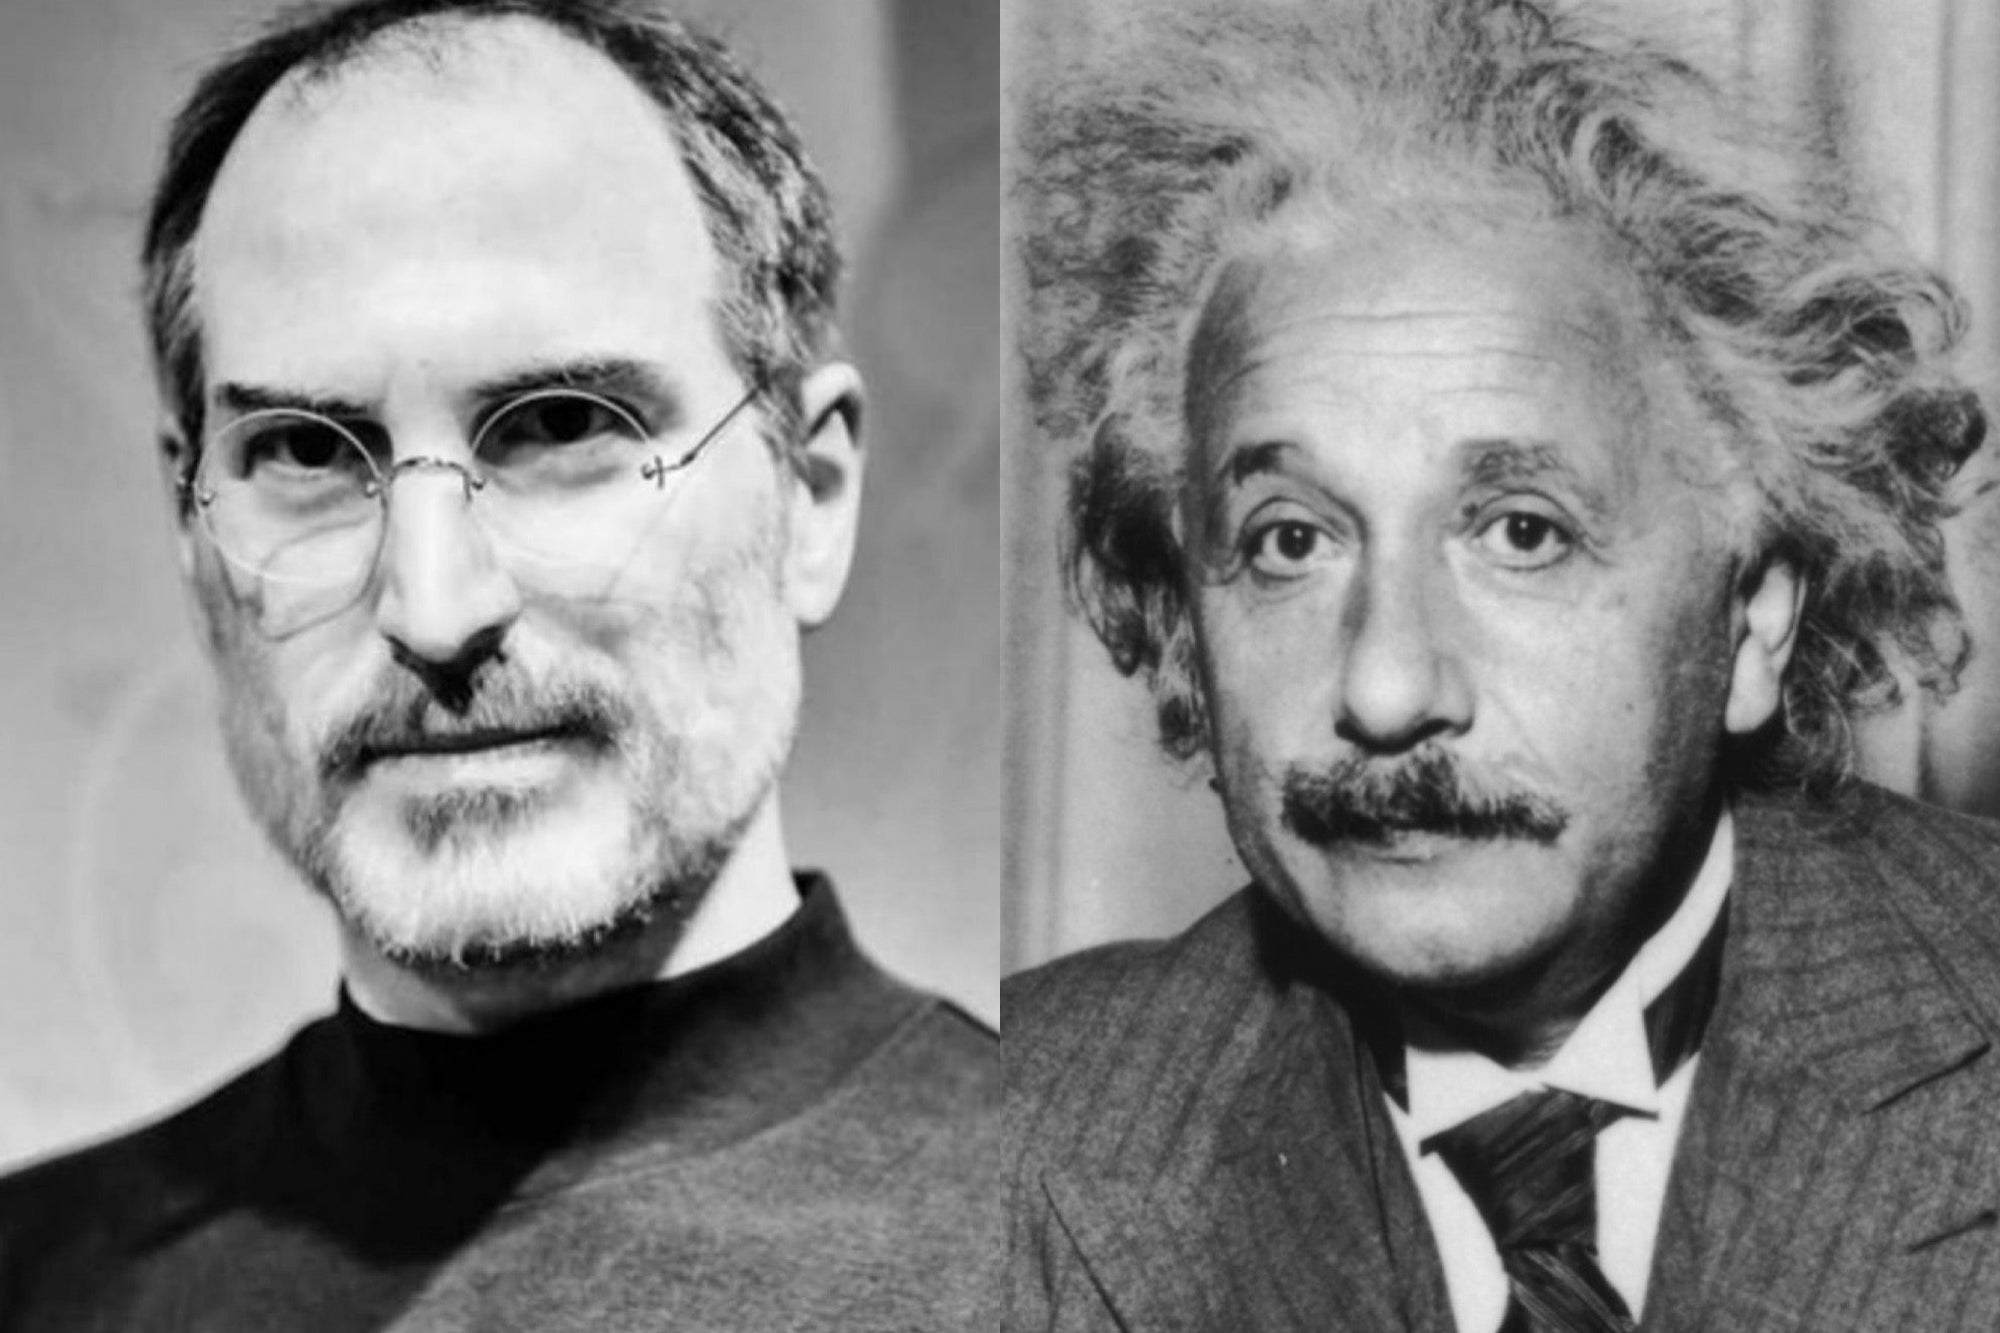 Steve Jobs and Albert Einstein applied the routine of 'no time' to increase creativity, what does it consist of?